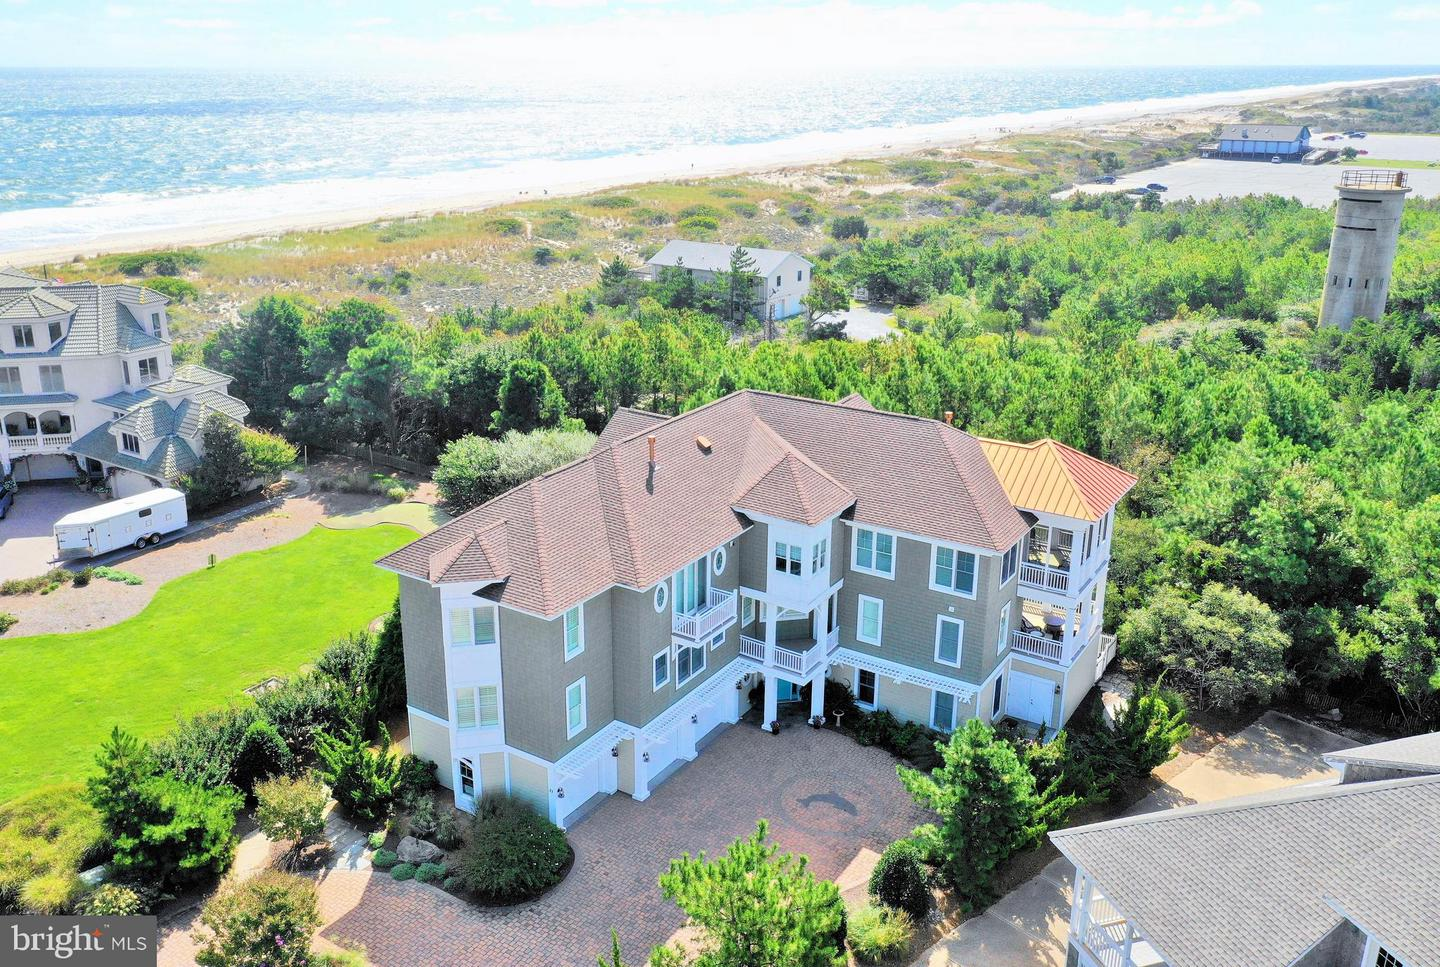 1002293530-300720129237-2018-09-25-15-08-25 31 Hall Ave | Rehoboth Beach, DE Real Estate For Sale | MLS# 1002293530  - 1st Choice Properties